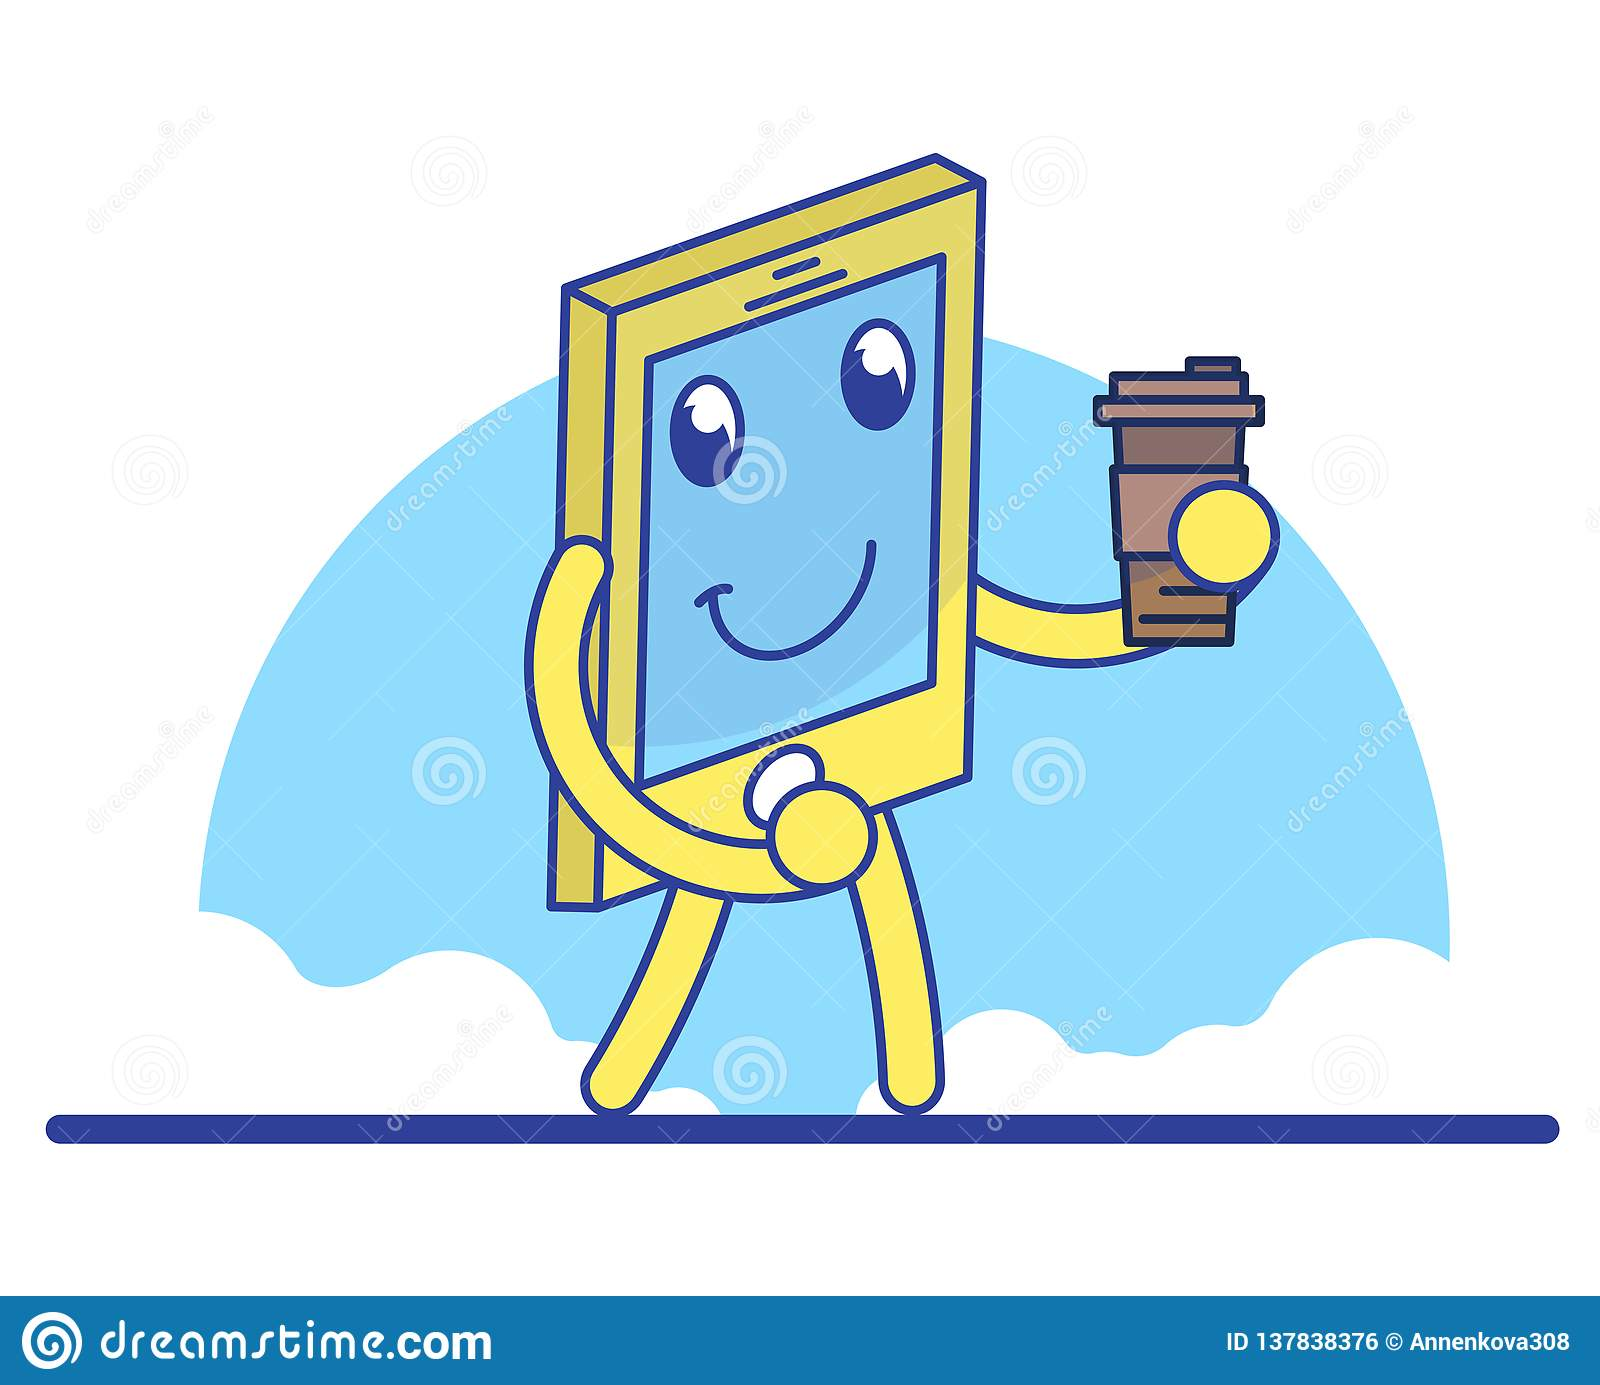 Funny Cartoon Mobile Phone Stock Vector Illustration Of Cellphone 137838376